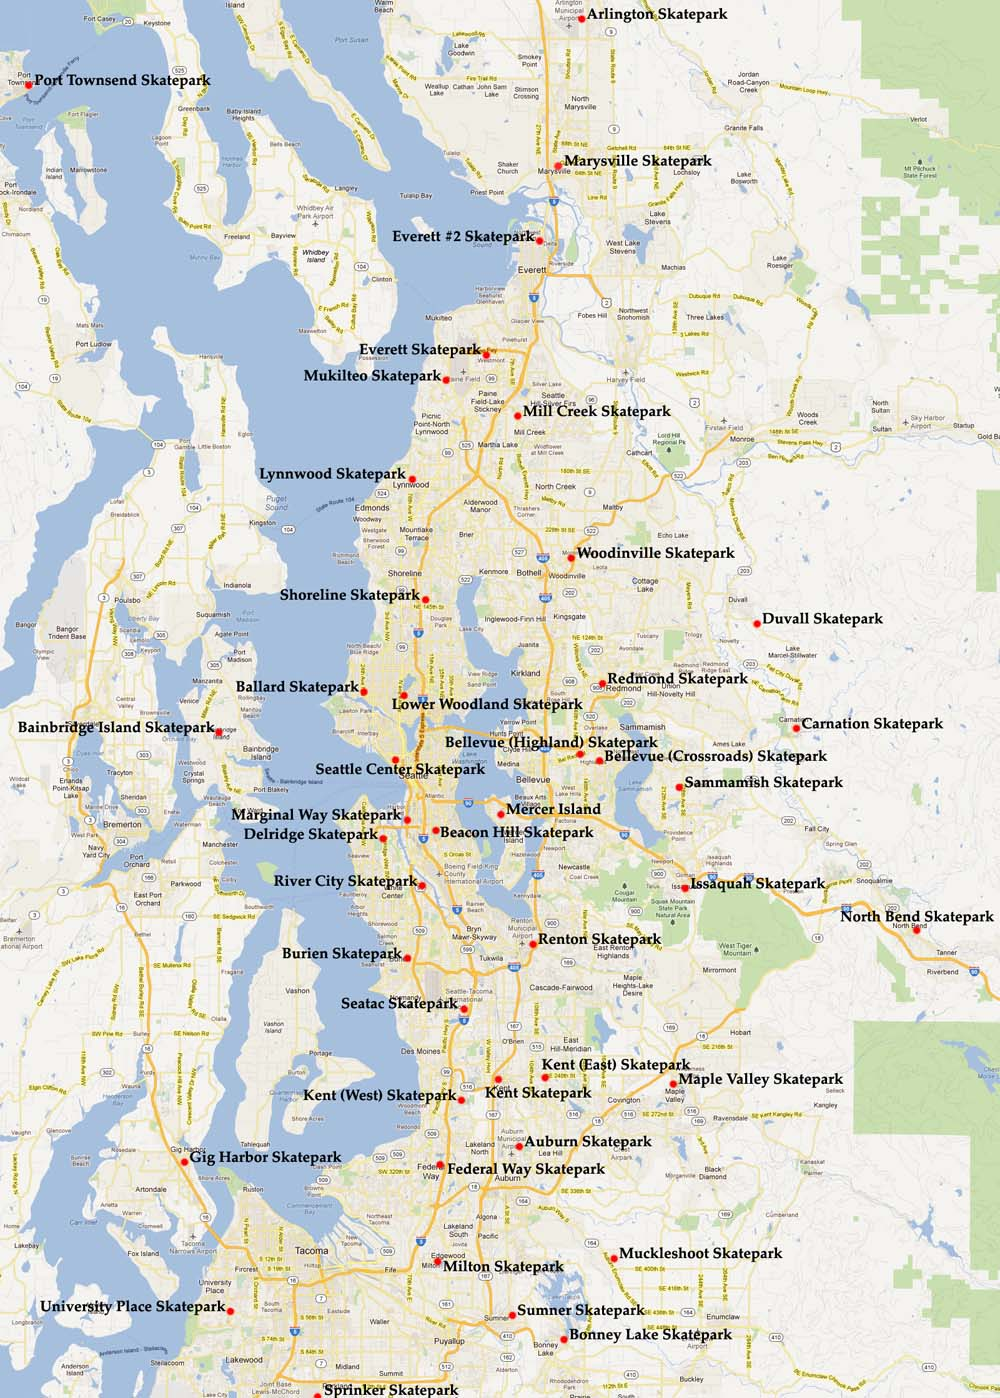 Similiar Map Of Seattle Area And Suburbs Keywords